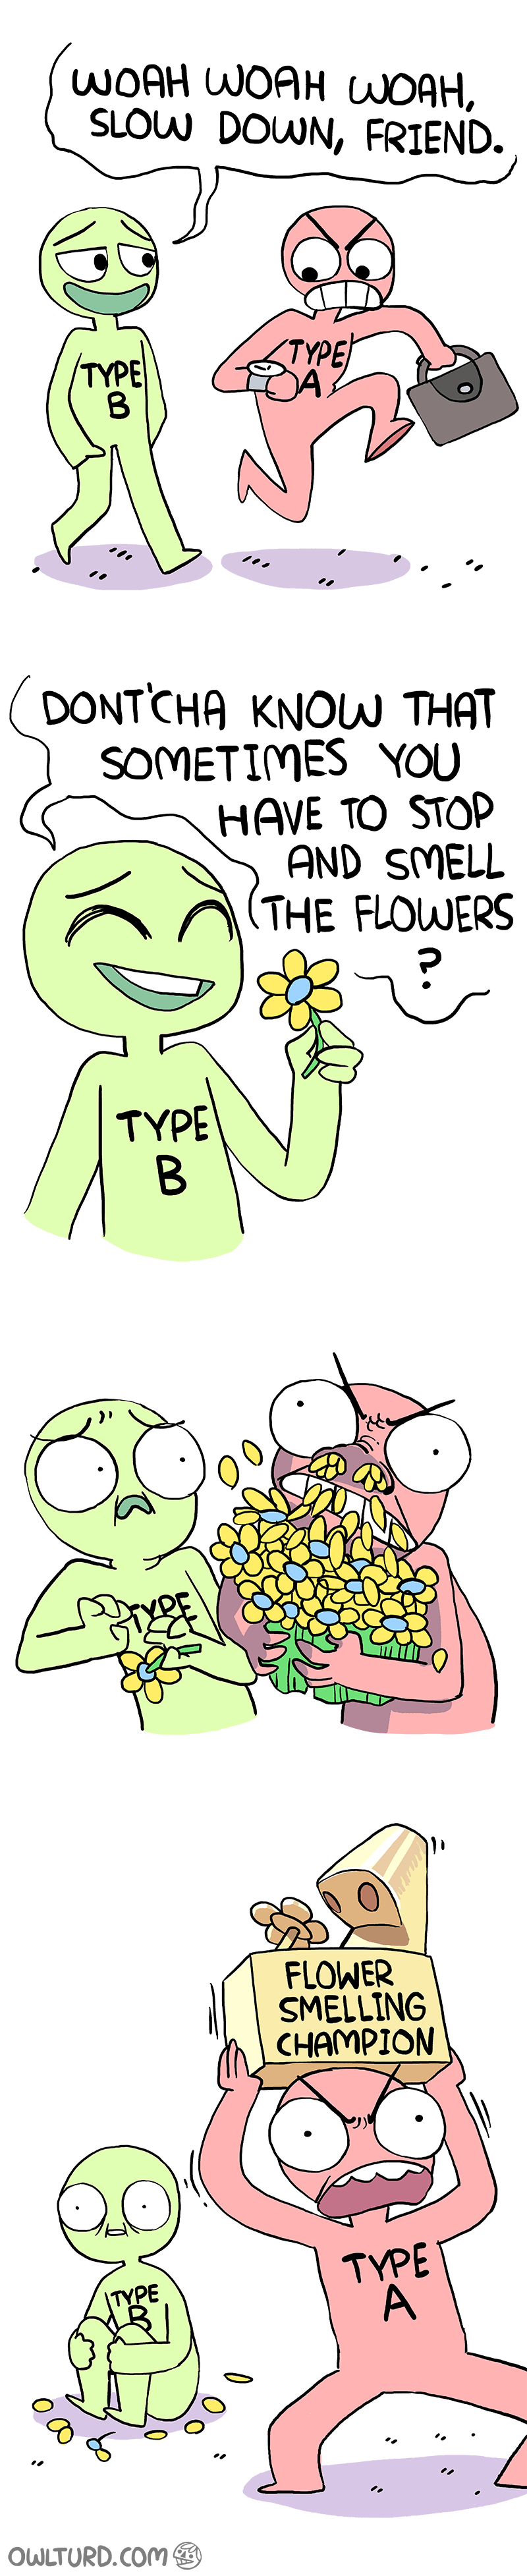 web comics flowers personality You Asked for It